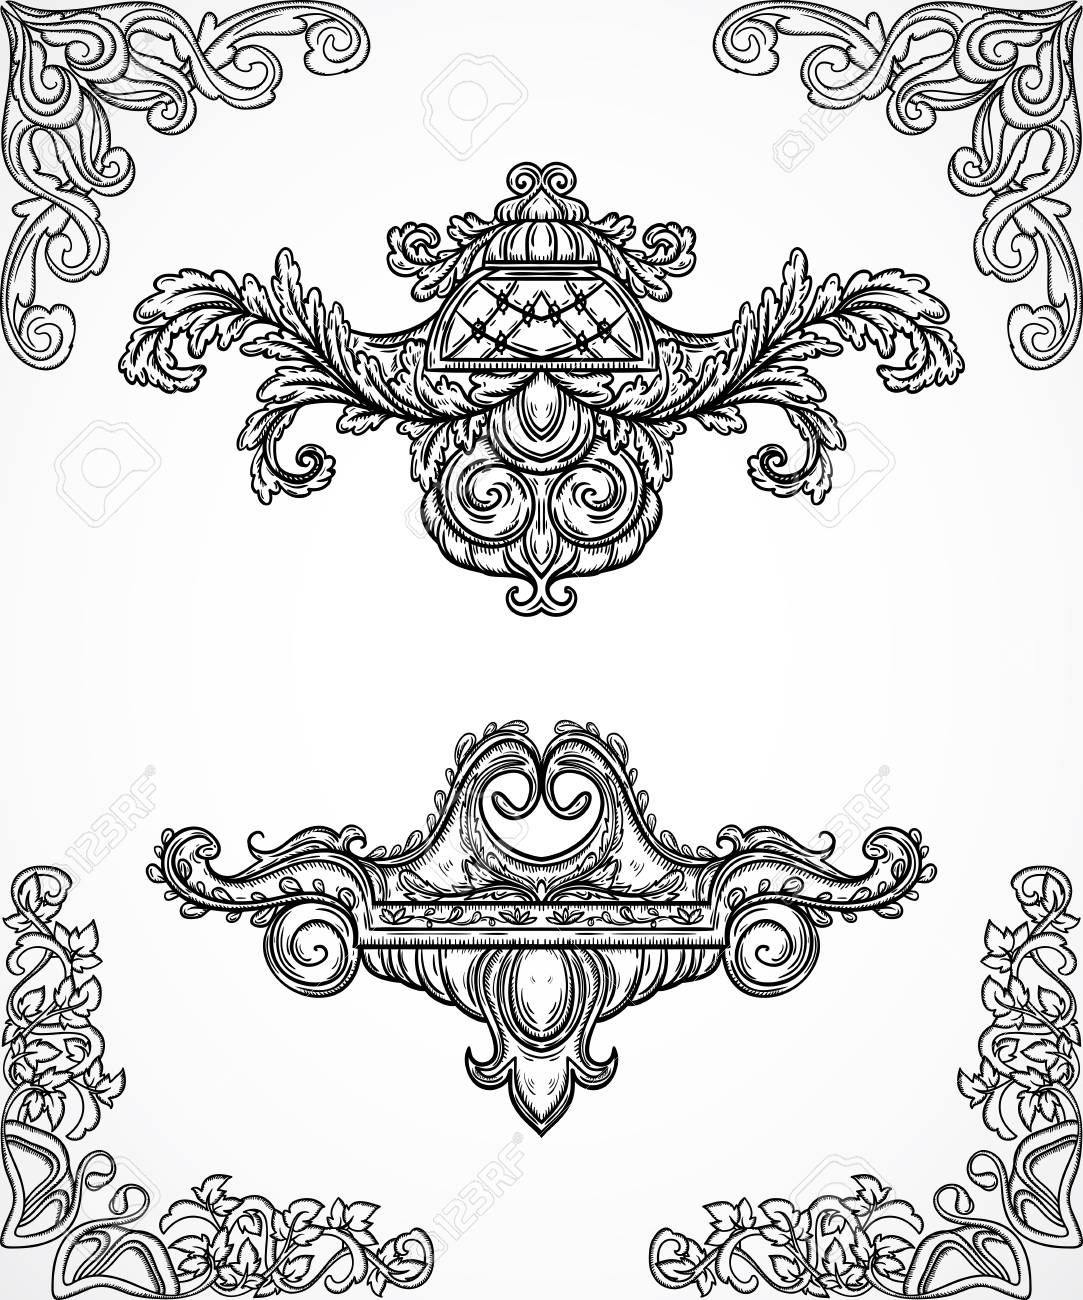 vector vintage architectural details design elements antique baroque classic style border and cartouche in engraving style